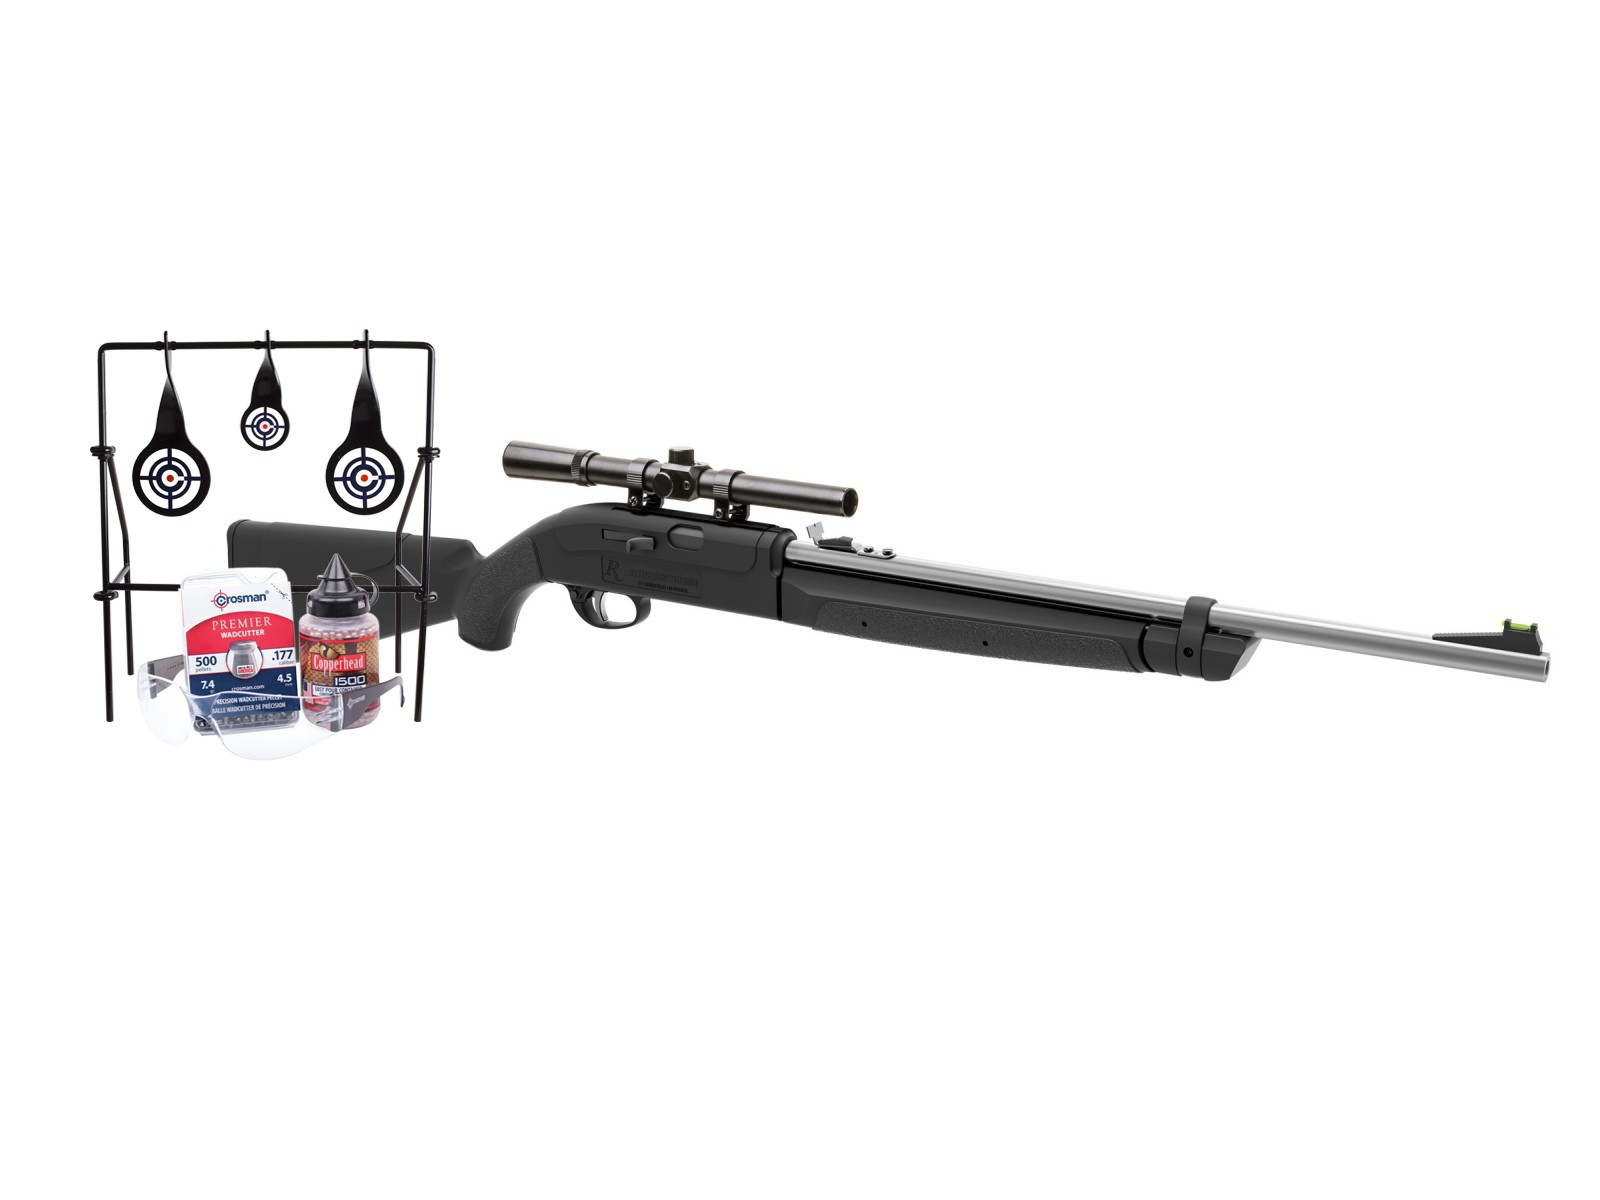 Remington AirMaster 77 Air Rifle Kit